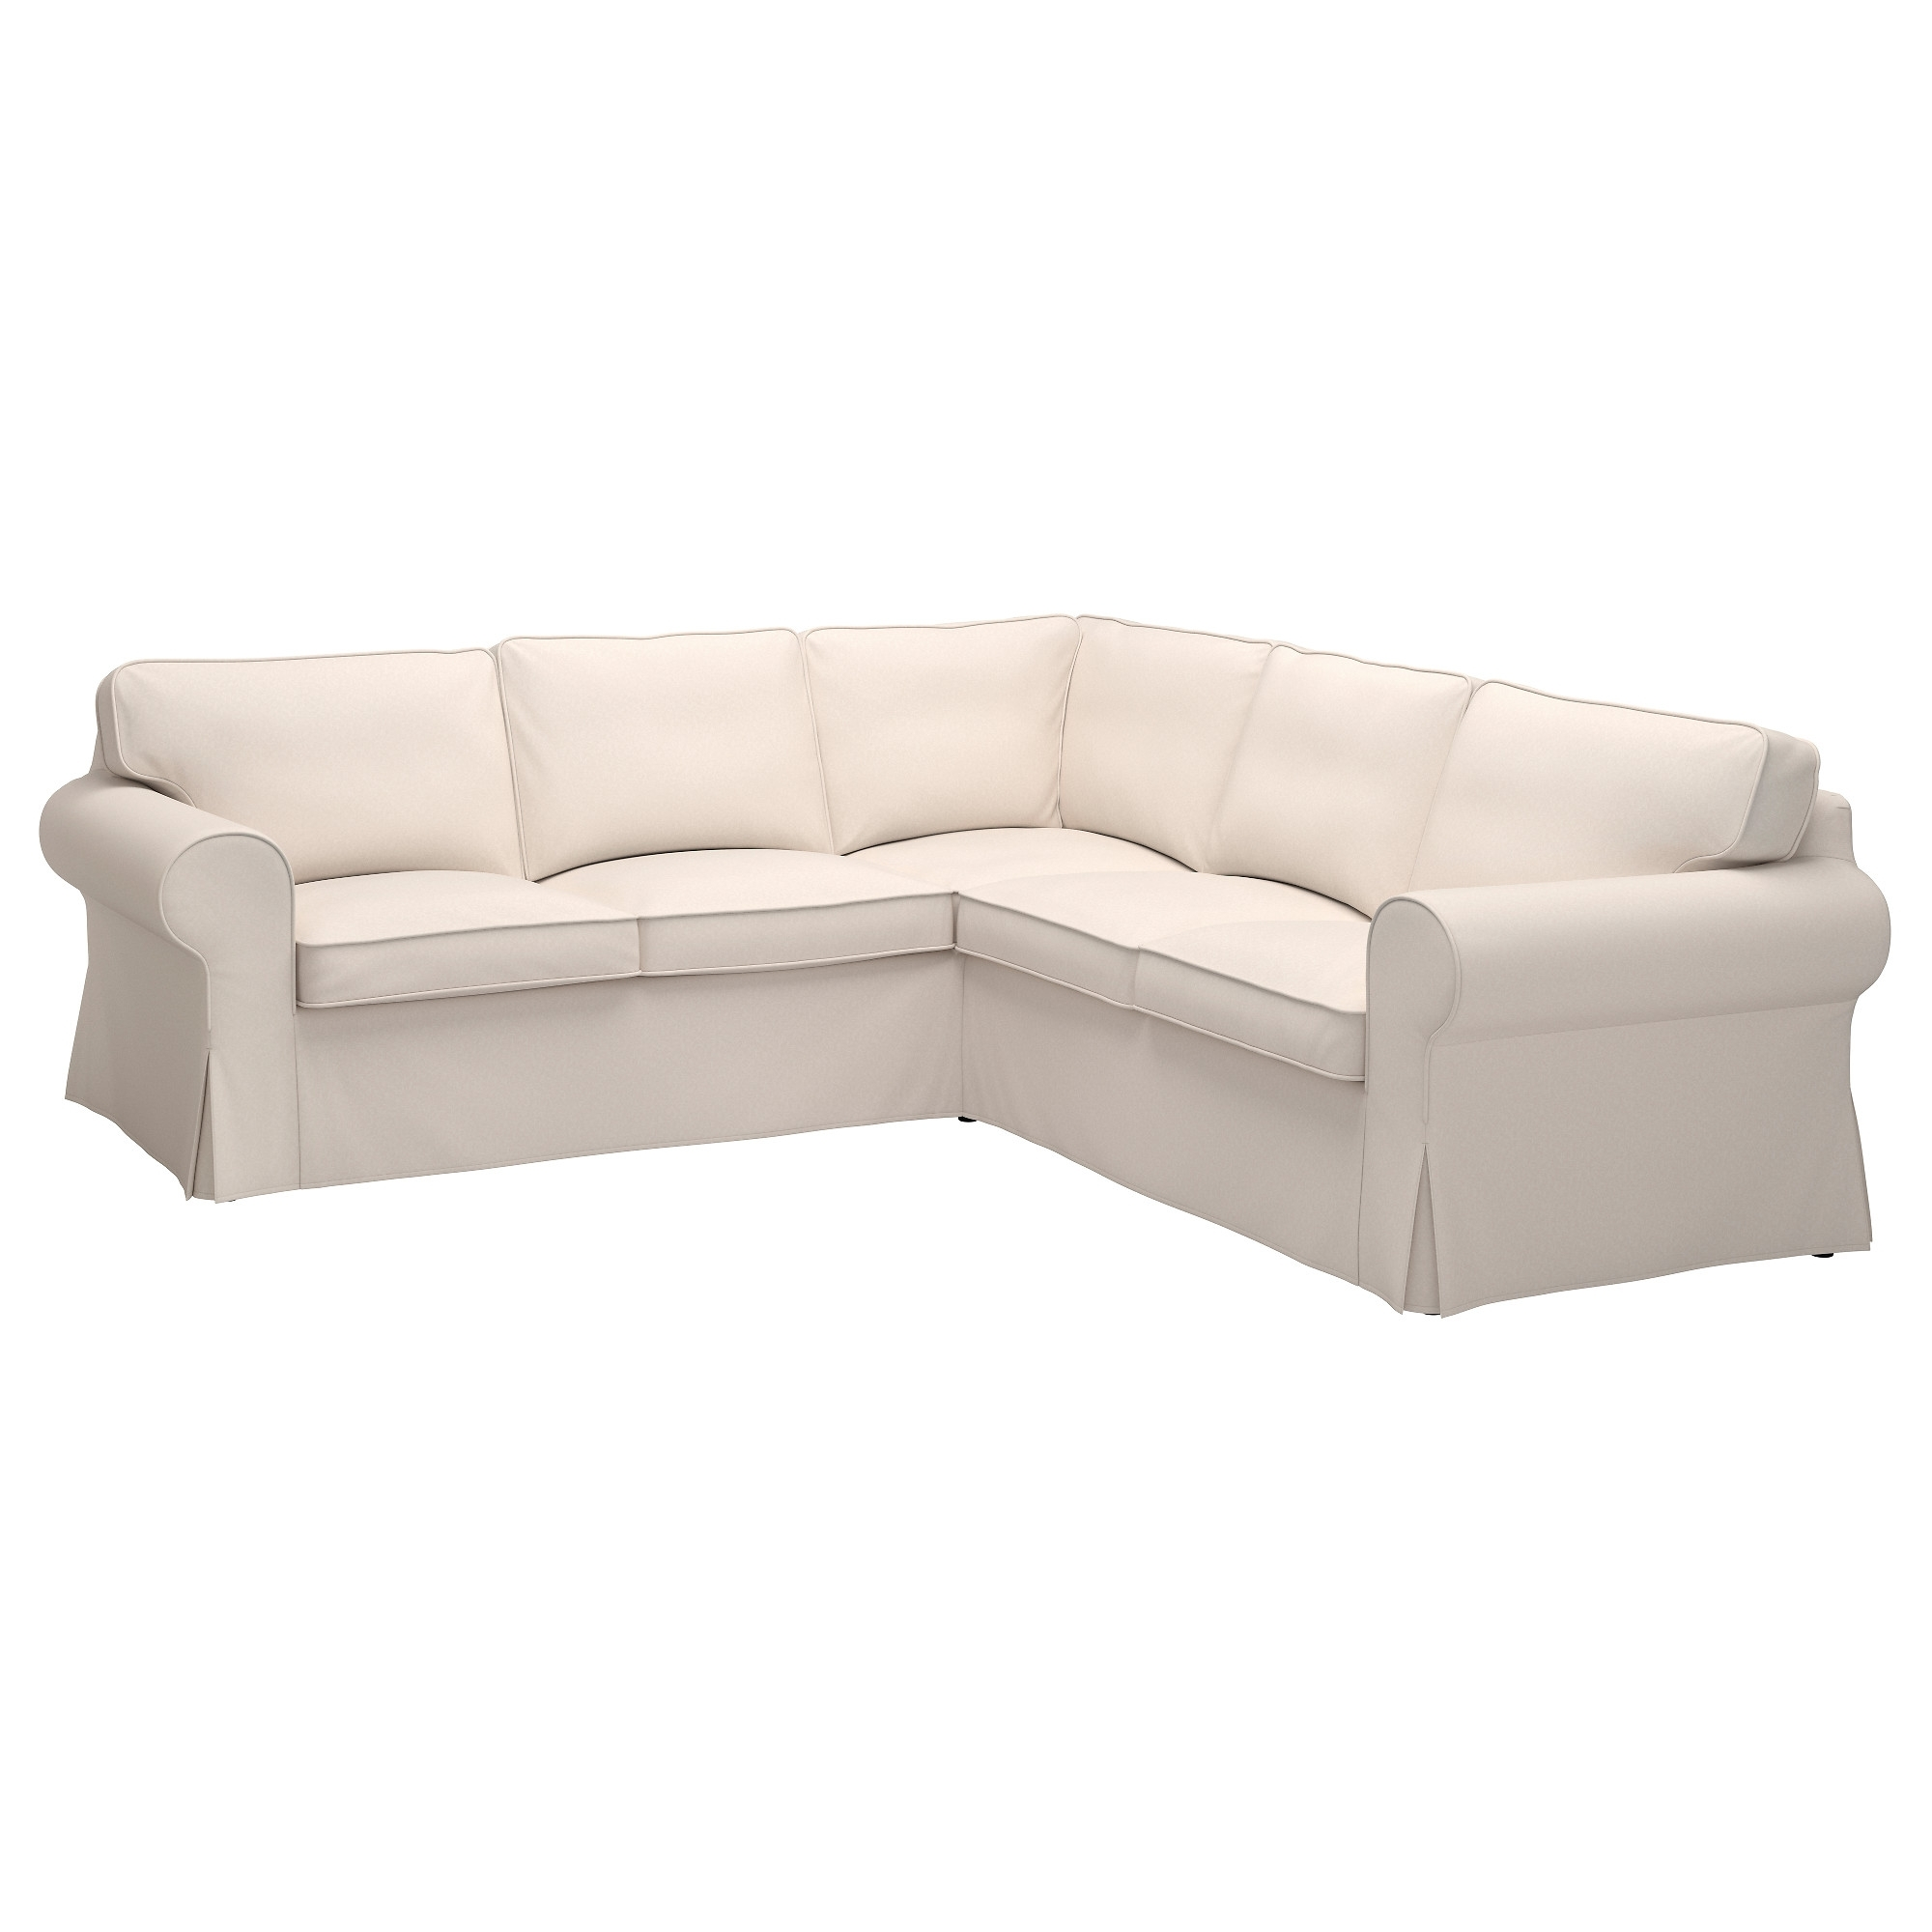 Sectional Sofas At Ikea Intended For Current Ektorp Sectional, 4 Seat Corner – Skaftarp Yellow – Ikea (View 4 of 15)